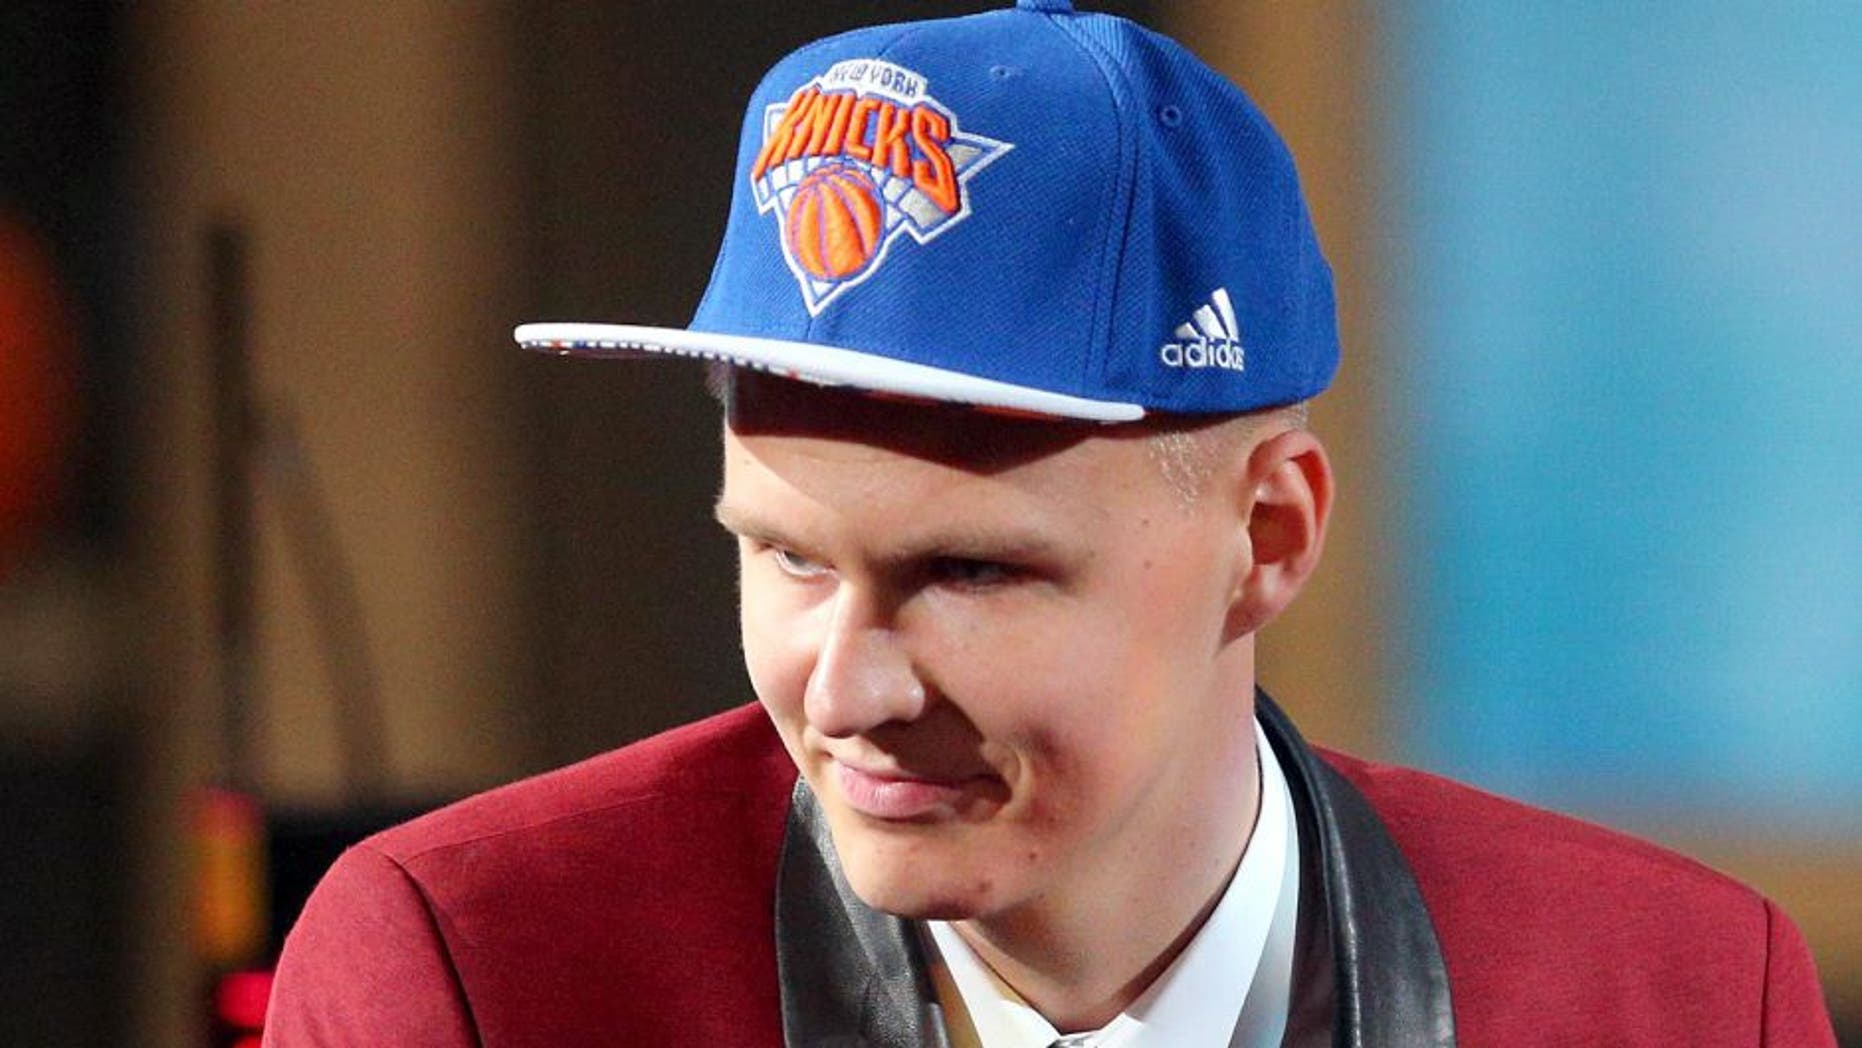 Jun 25, 2015; Brooklyn, NY, USA; Kristaps Porzingis (SPN) reacts after being selected as the number four overall pick to the Miami Heat in the first round of the 2015 NBA Draft at Barclays Center. Mandatory Credit: Brad Penner-USA TODAY Sports